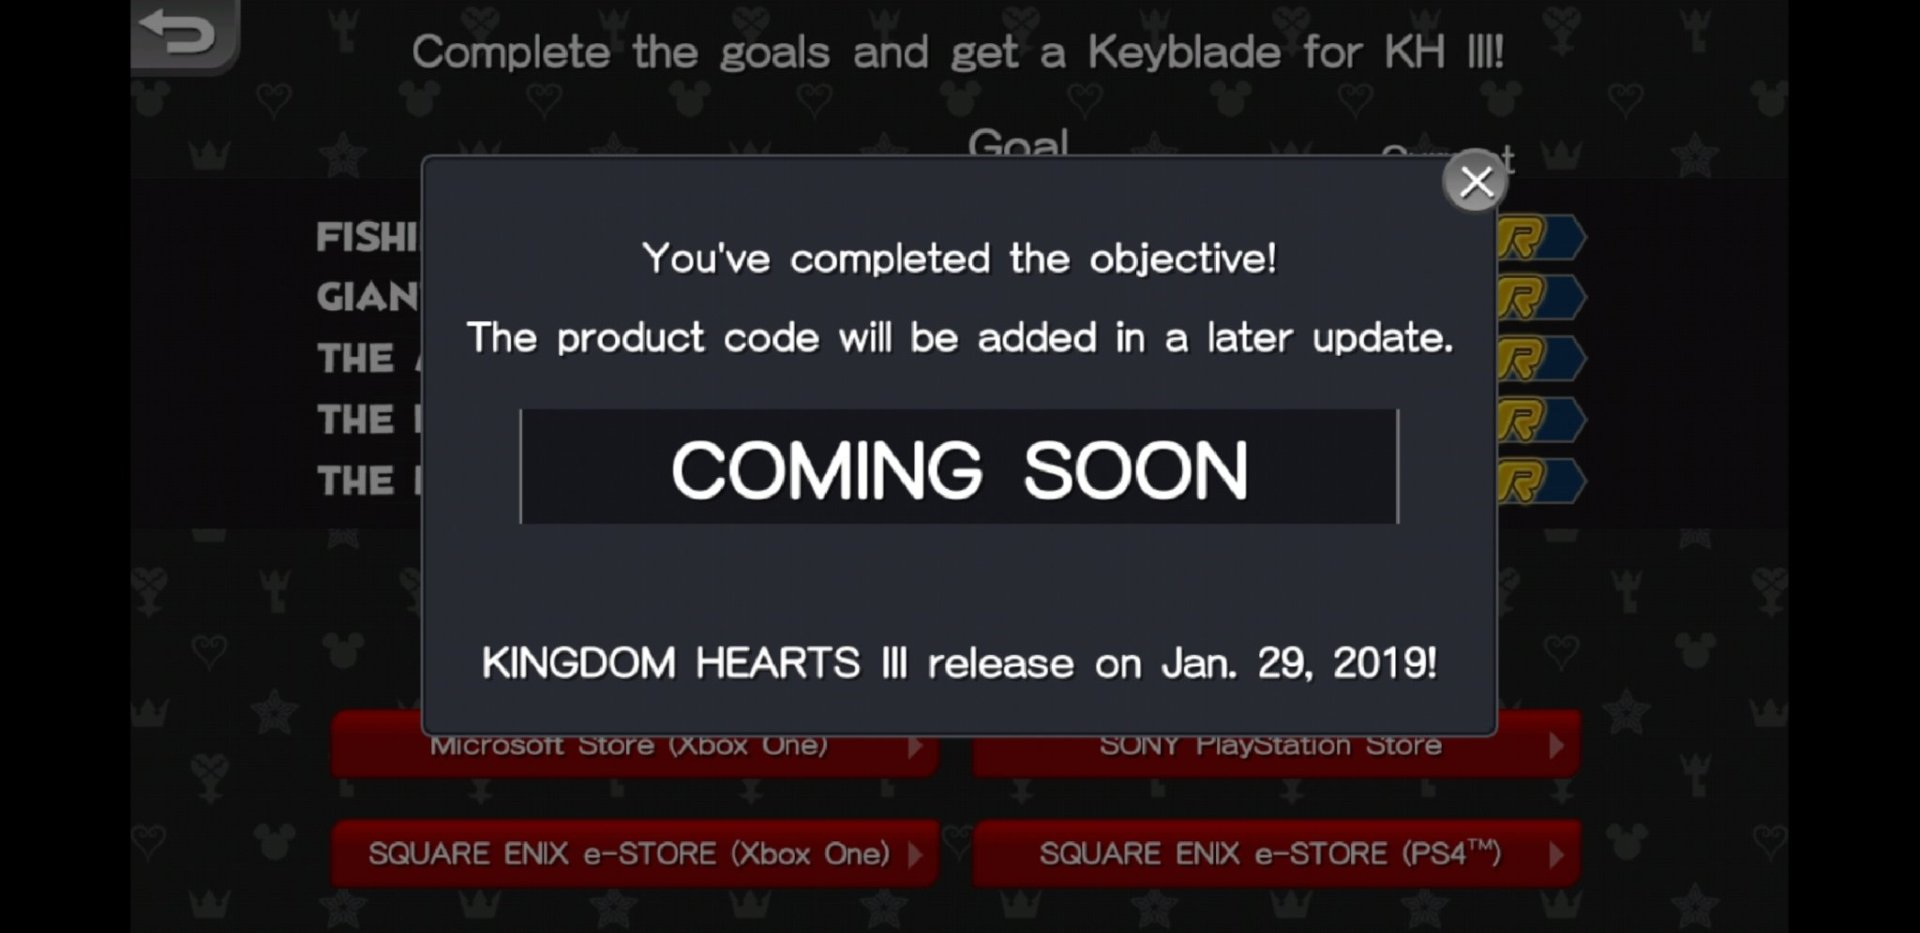 Kingdom Hearts Mobile Game: How to unlock the Keyblade DLC for KH